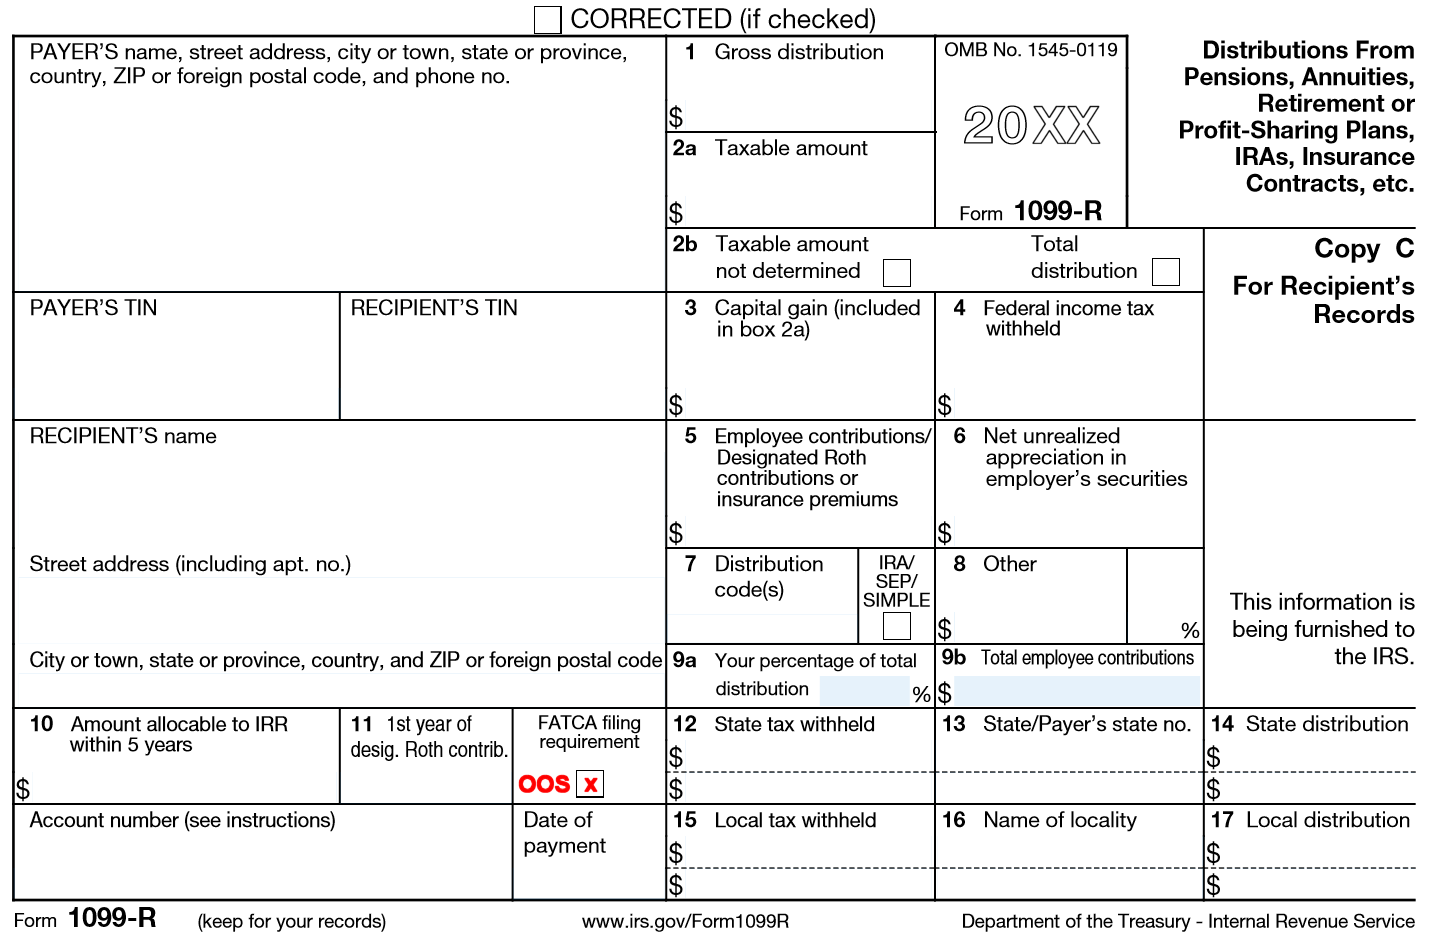 Irs Form 1099 R Distribution Code G